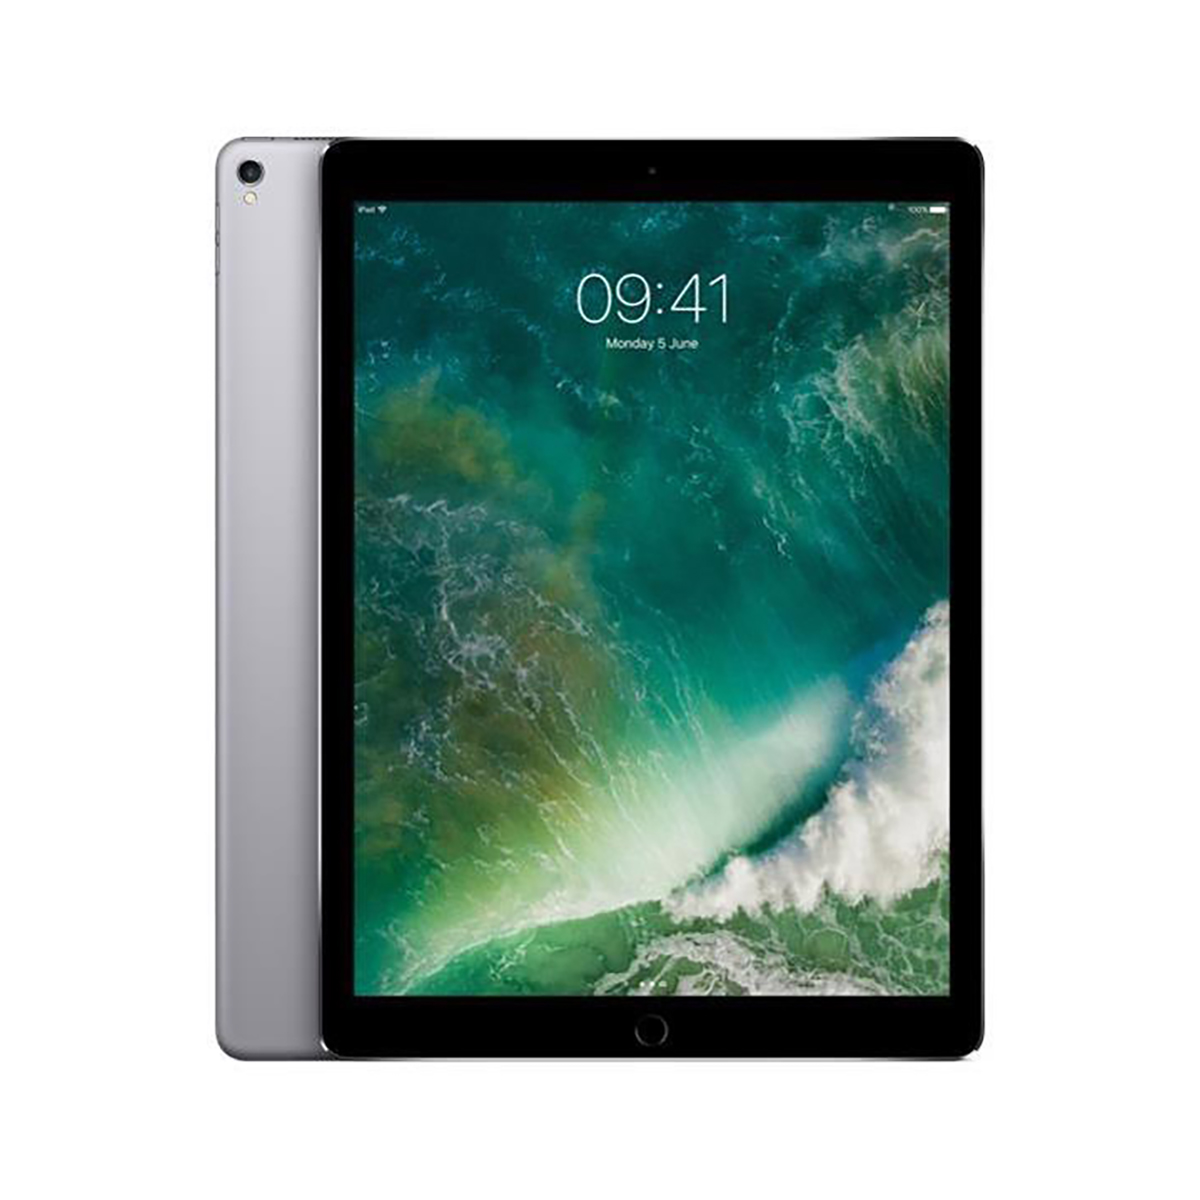 Tablet computers Apple iPad Pro Cellular Wi-Fi 64GB 12MP Camera 12.9inch Space Grey Ref MTHJ2B/A